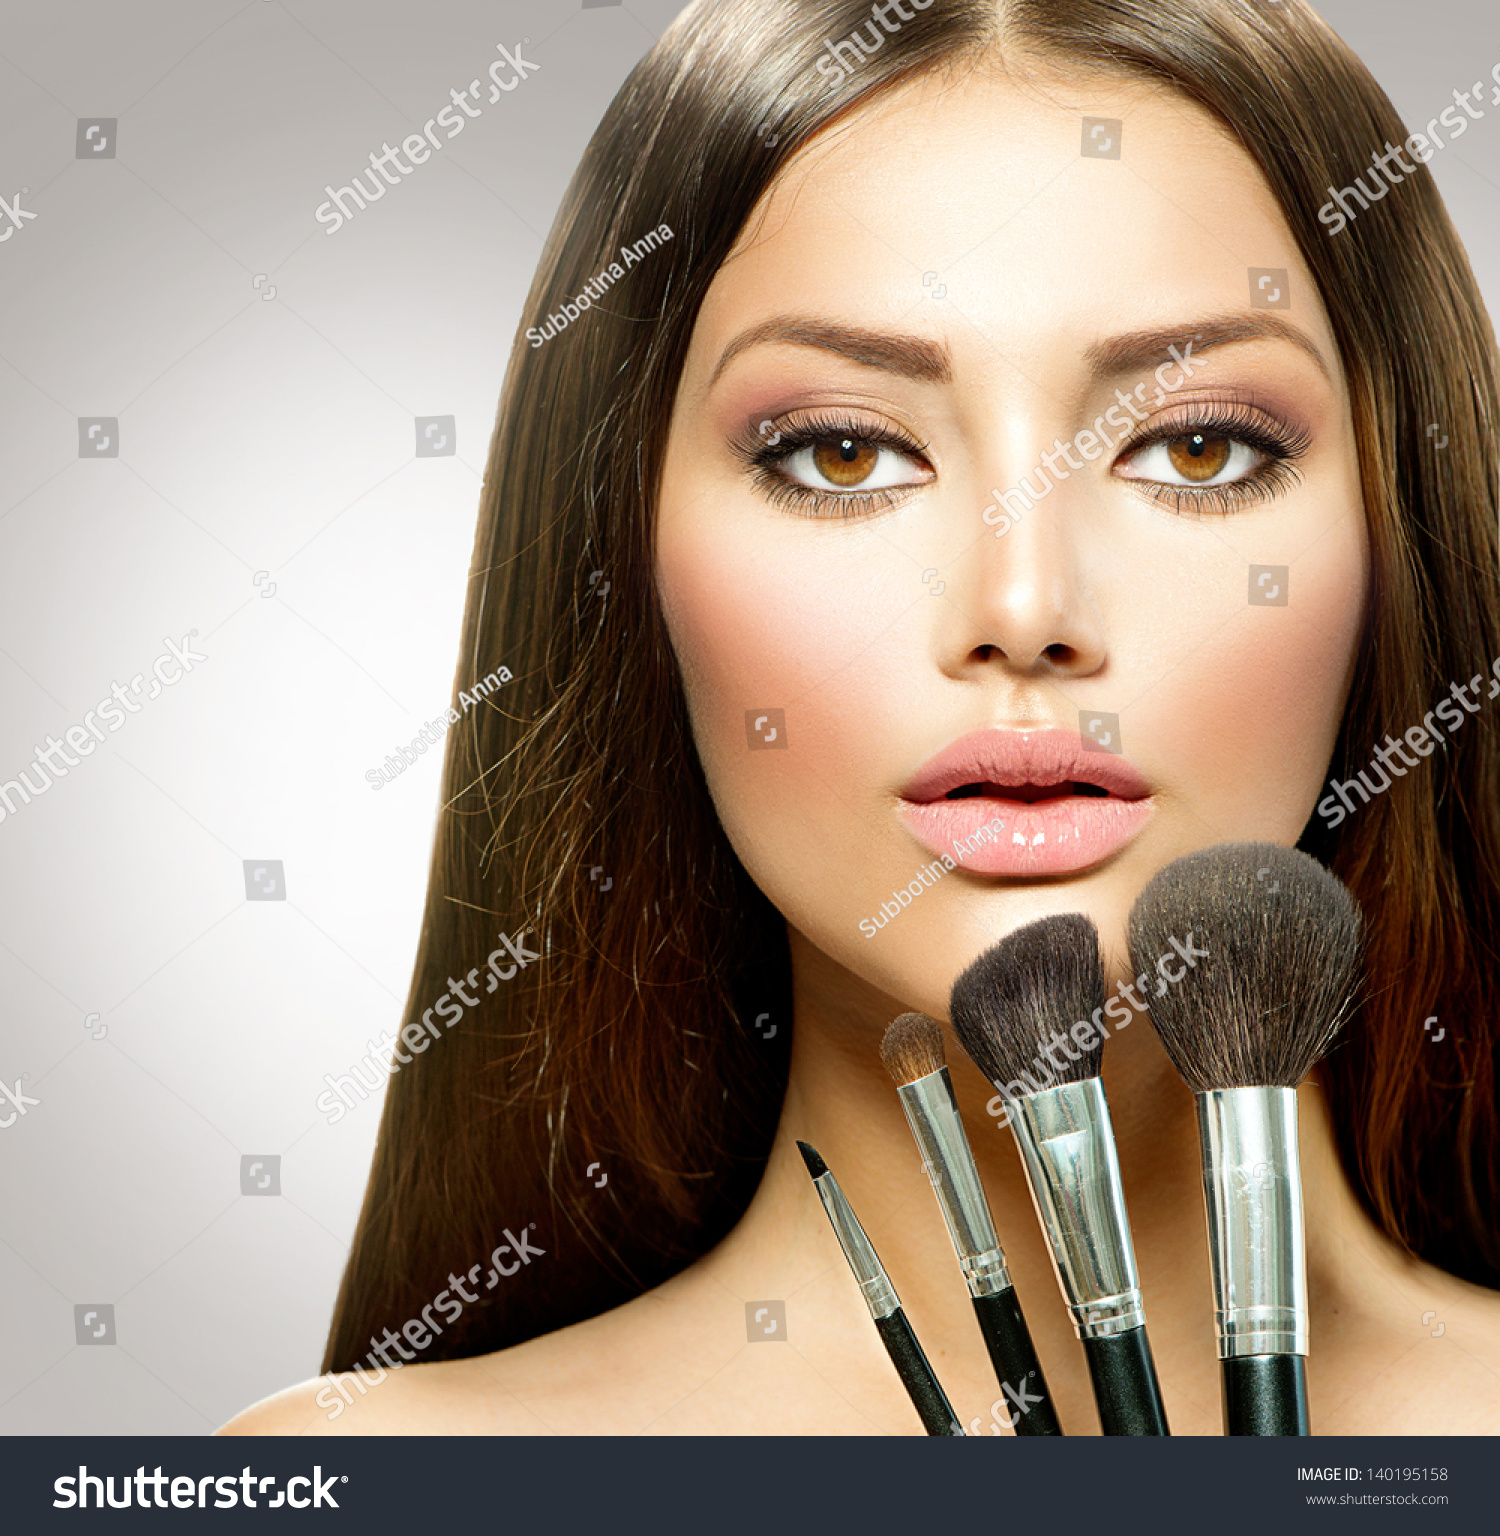 Makeup for girls with